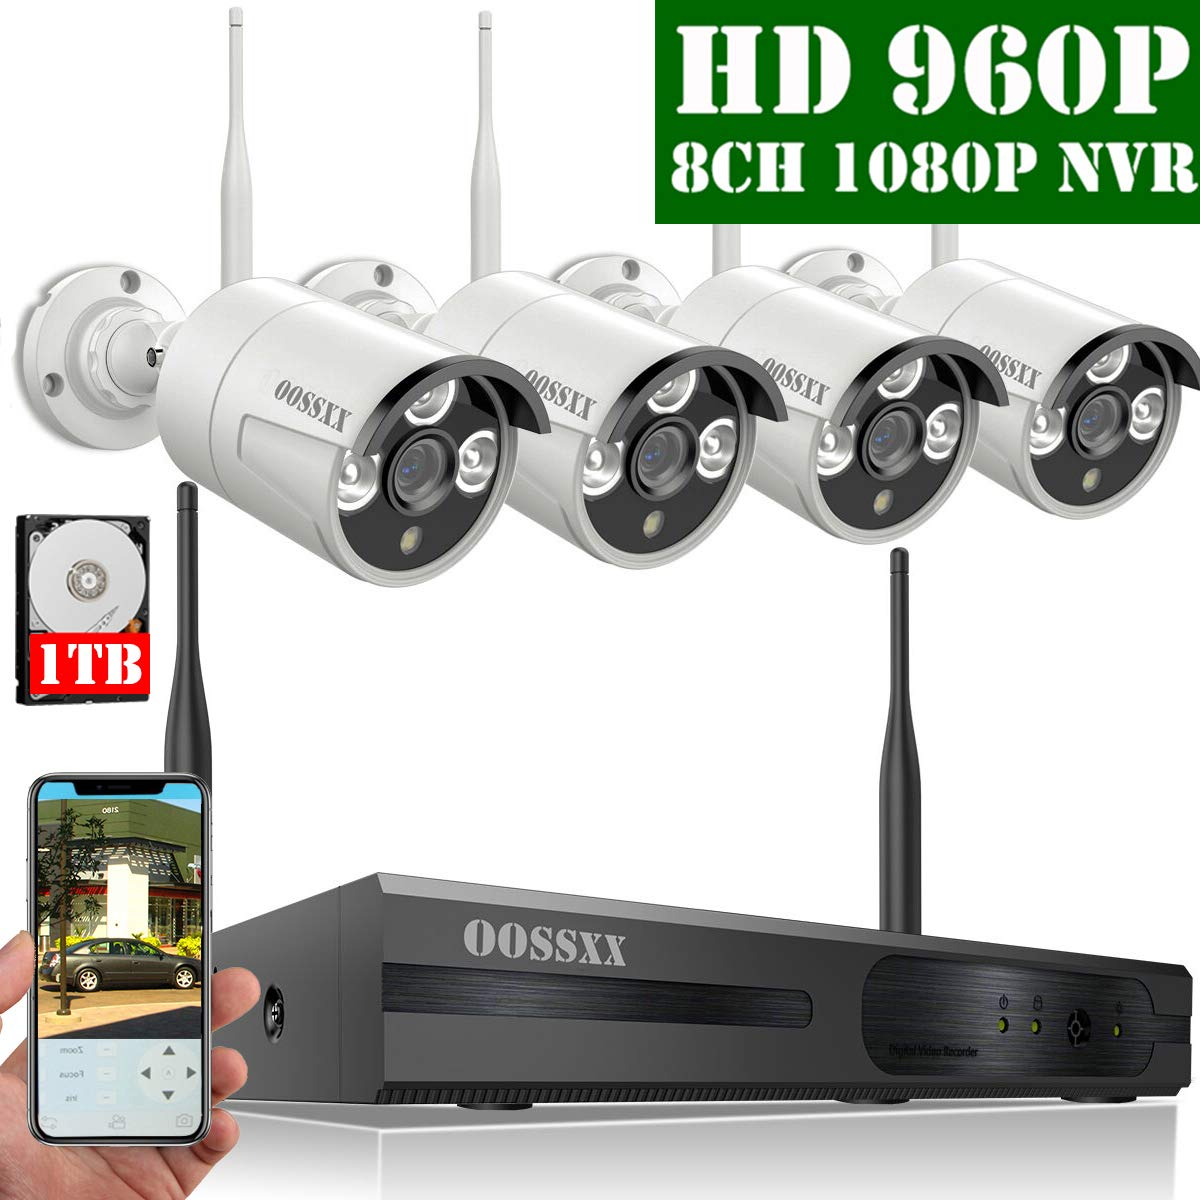 2019 Update HD 1080P 8-Channel OOSSXX Wireless Security Camera System,4Pcs 960P 1.3 Megapixel Wireless Indoor Outdoor IR Bullet IP Cameras,P2P,App, HDMI Cord 1TB HDD Pre-Install